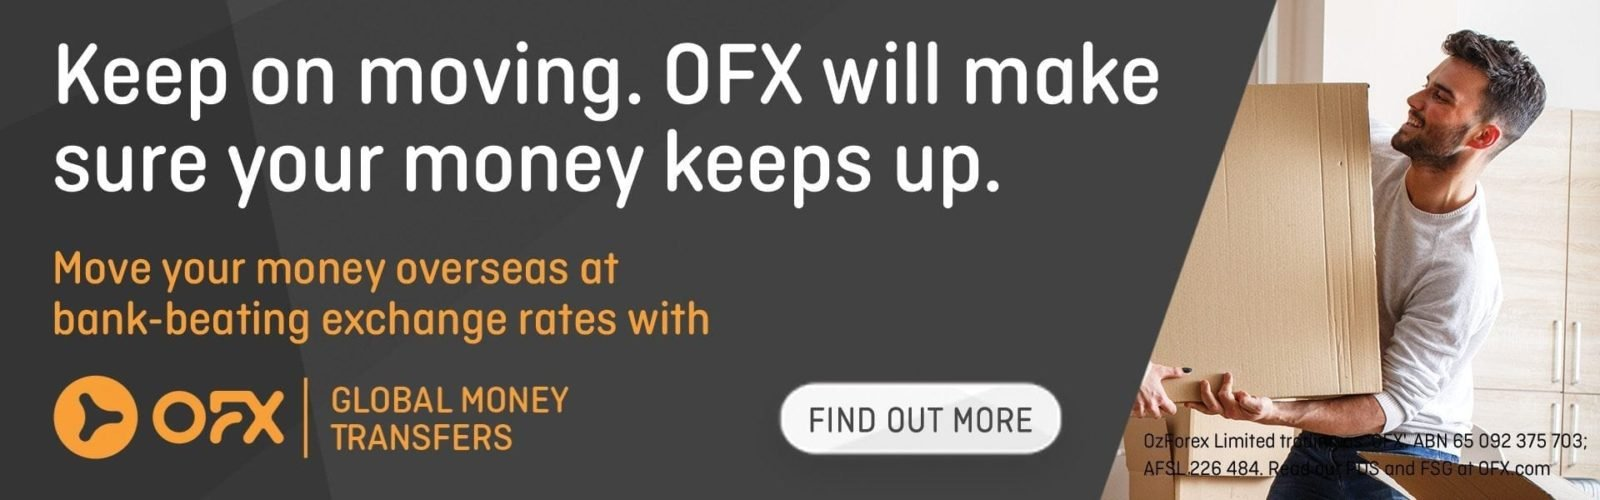 OFX - Move your money overseas